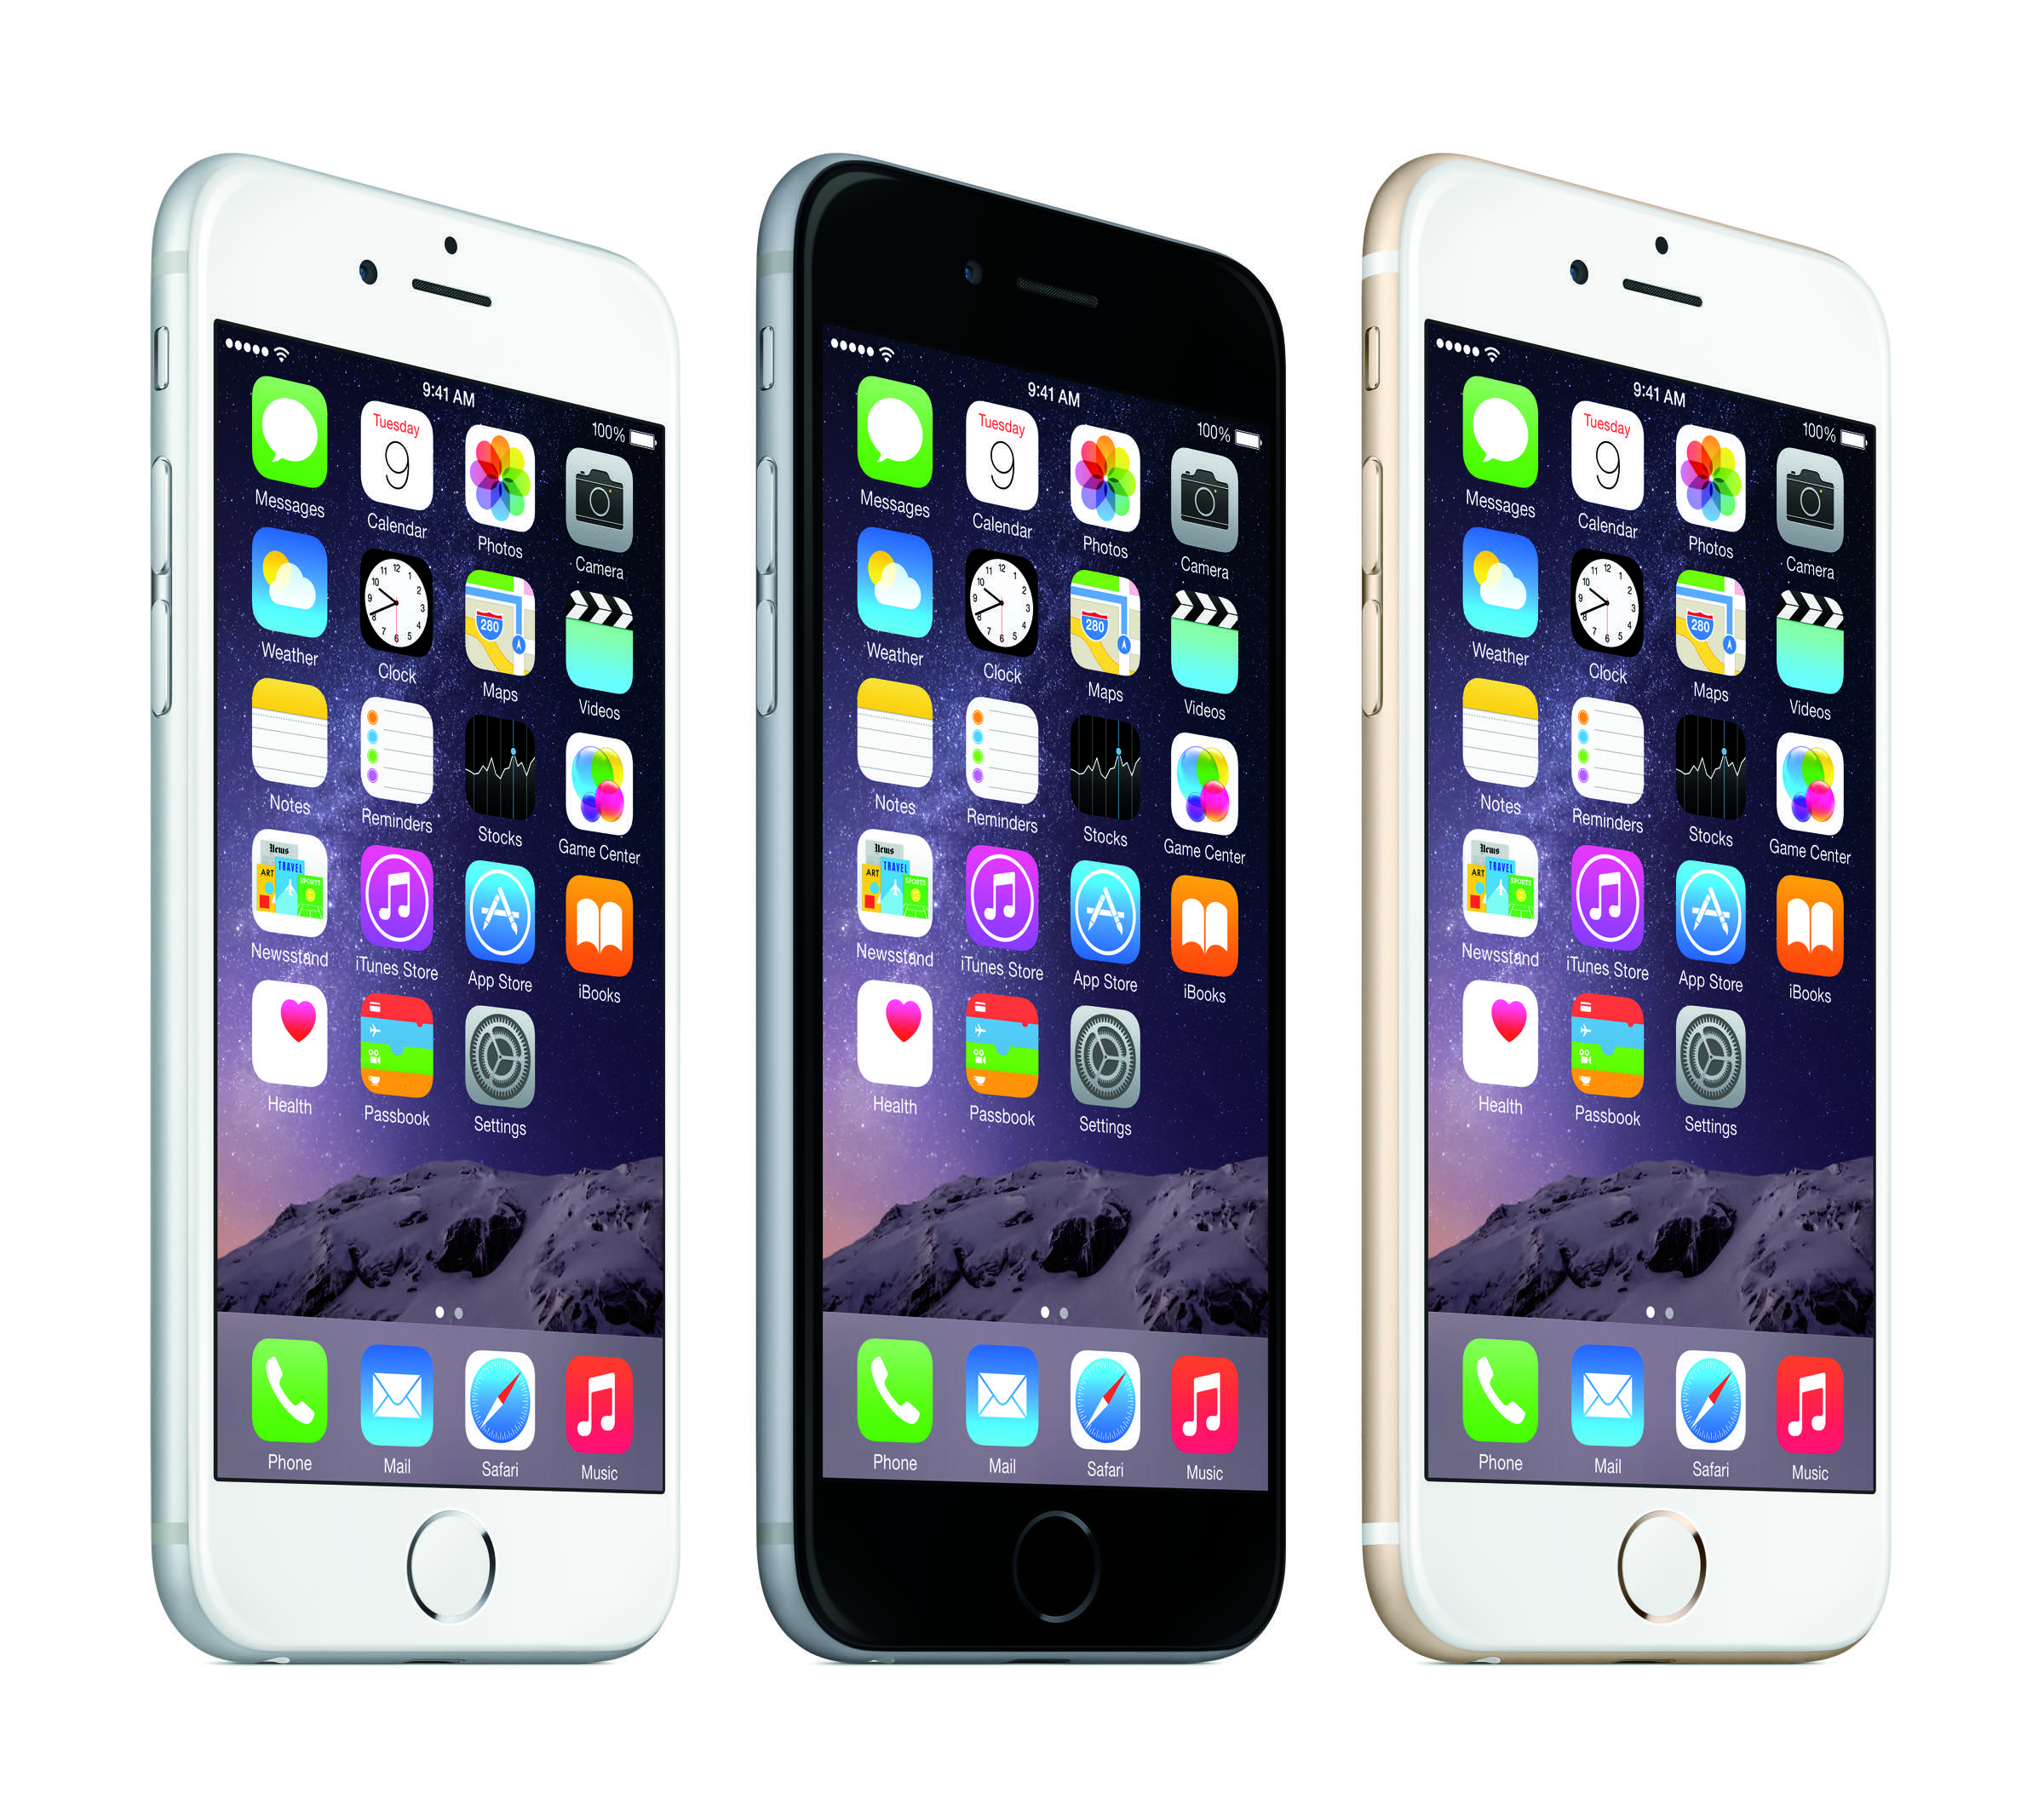 iphone 5 tmobile price iphone 6 carriers verizon vs at amp t vs t mobile vs sprint 14601